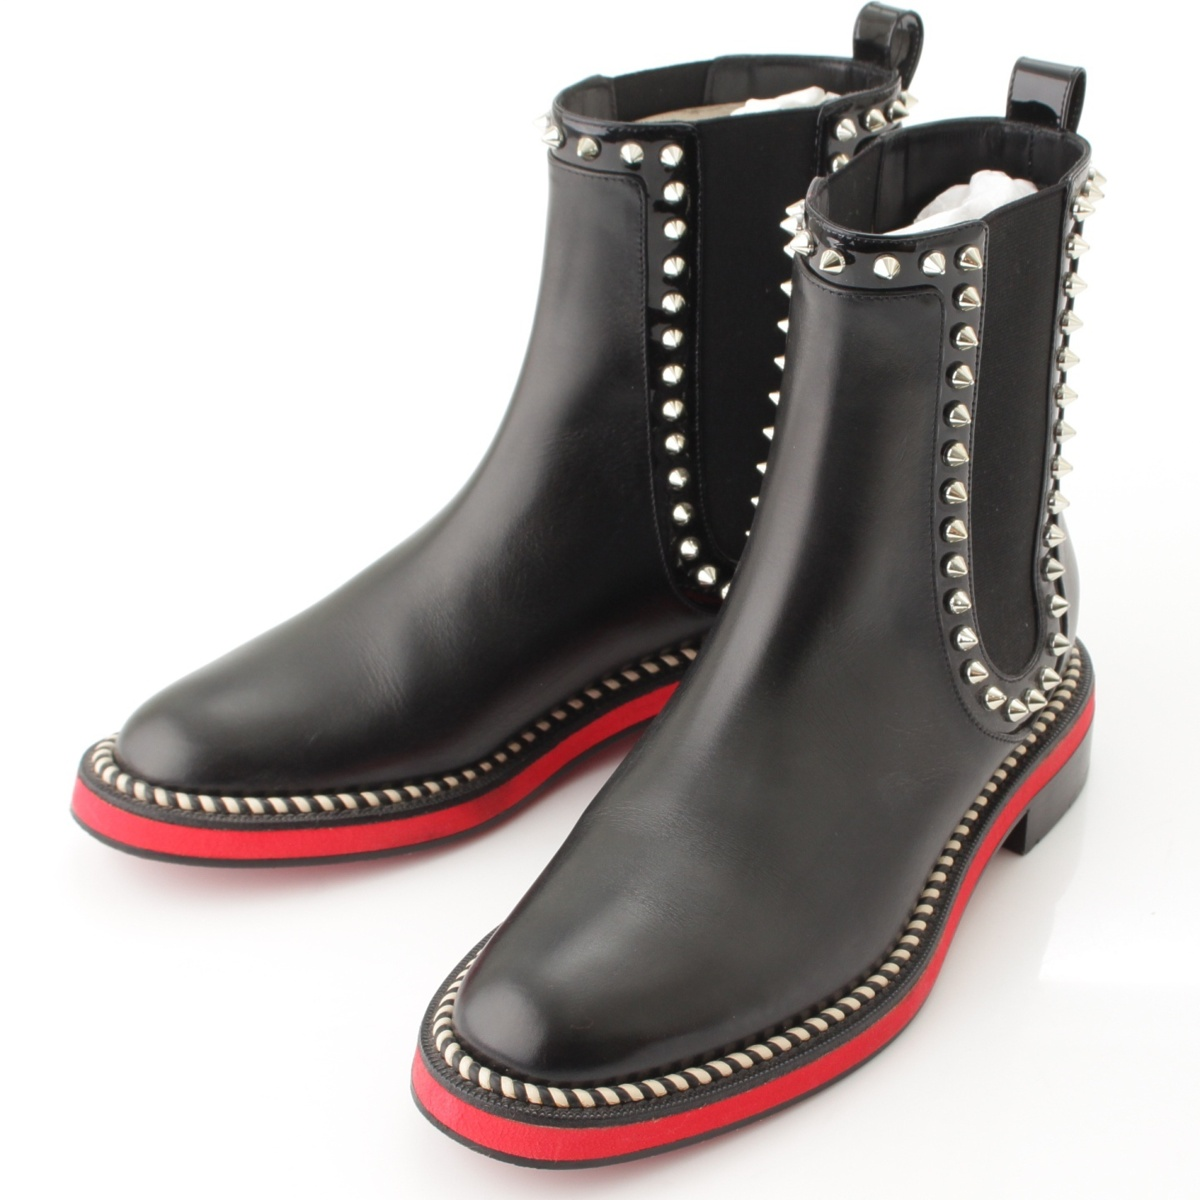 Christian Louboutin NOTHING HILL スパイク レザー ショートブーツ ブラック 37 60359【正規品】【送料無料】